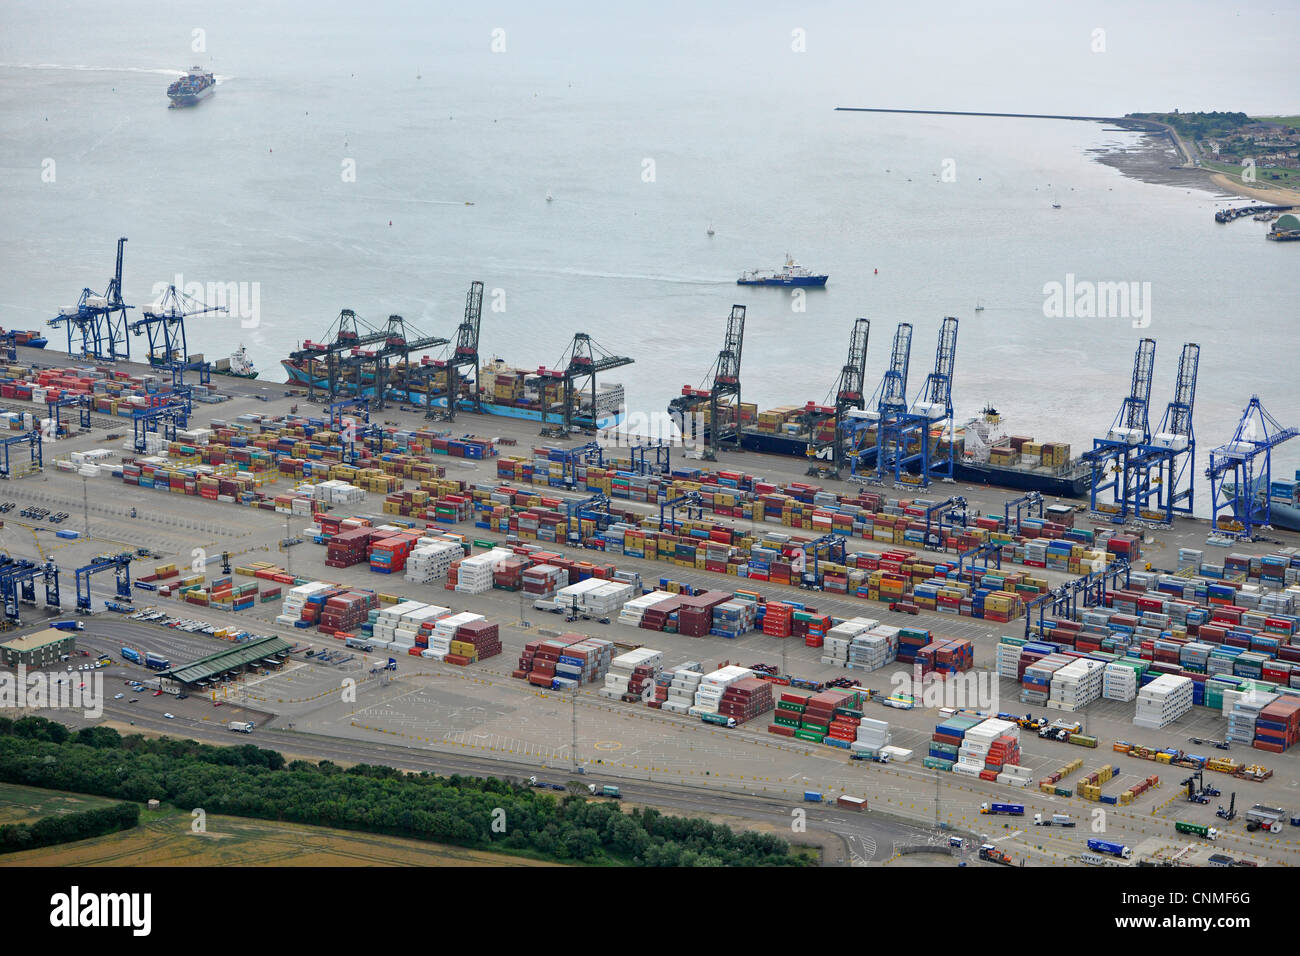 Aerial Photograph showing Felixstowe docks with shipping containers, cranes and ships in port. - Stock Image